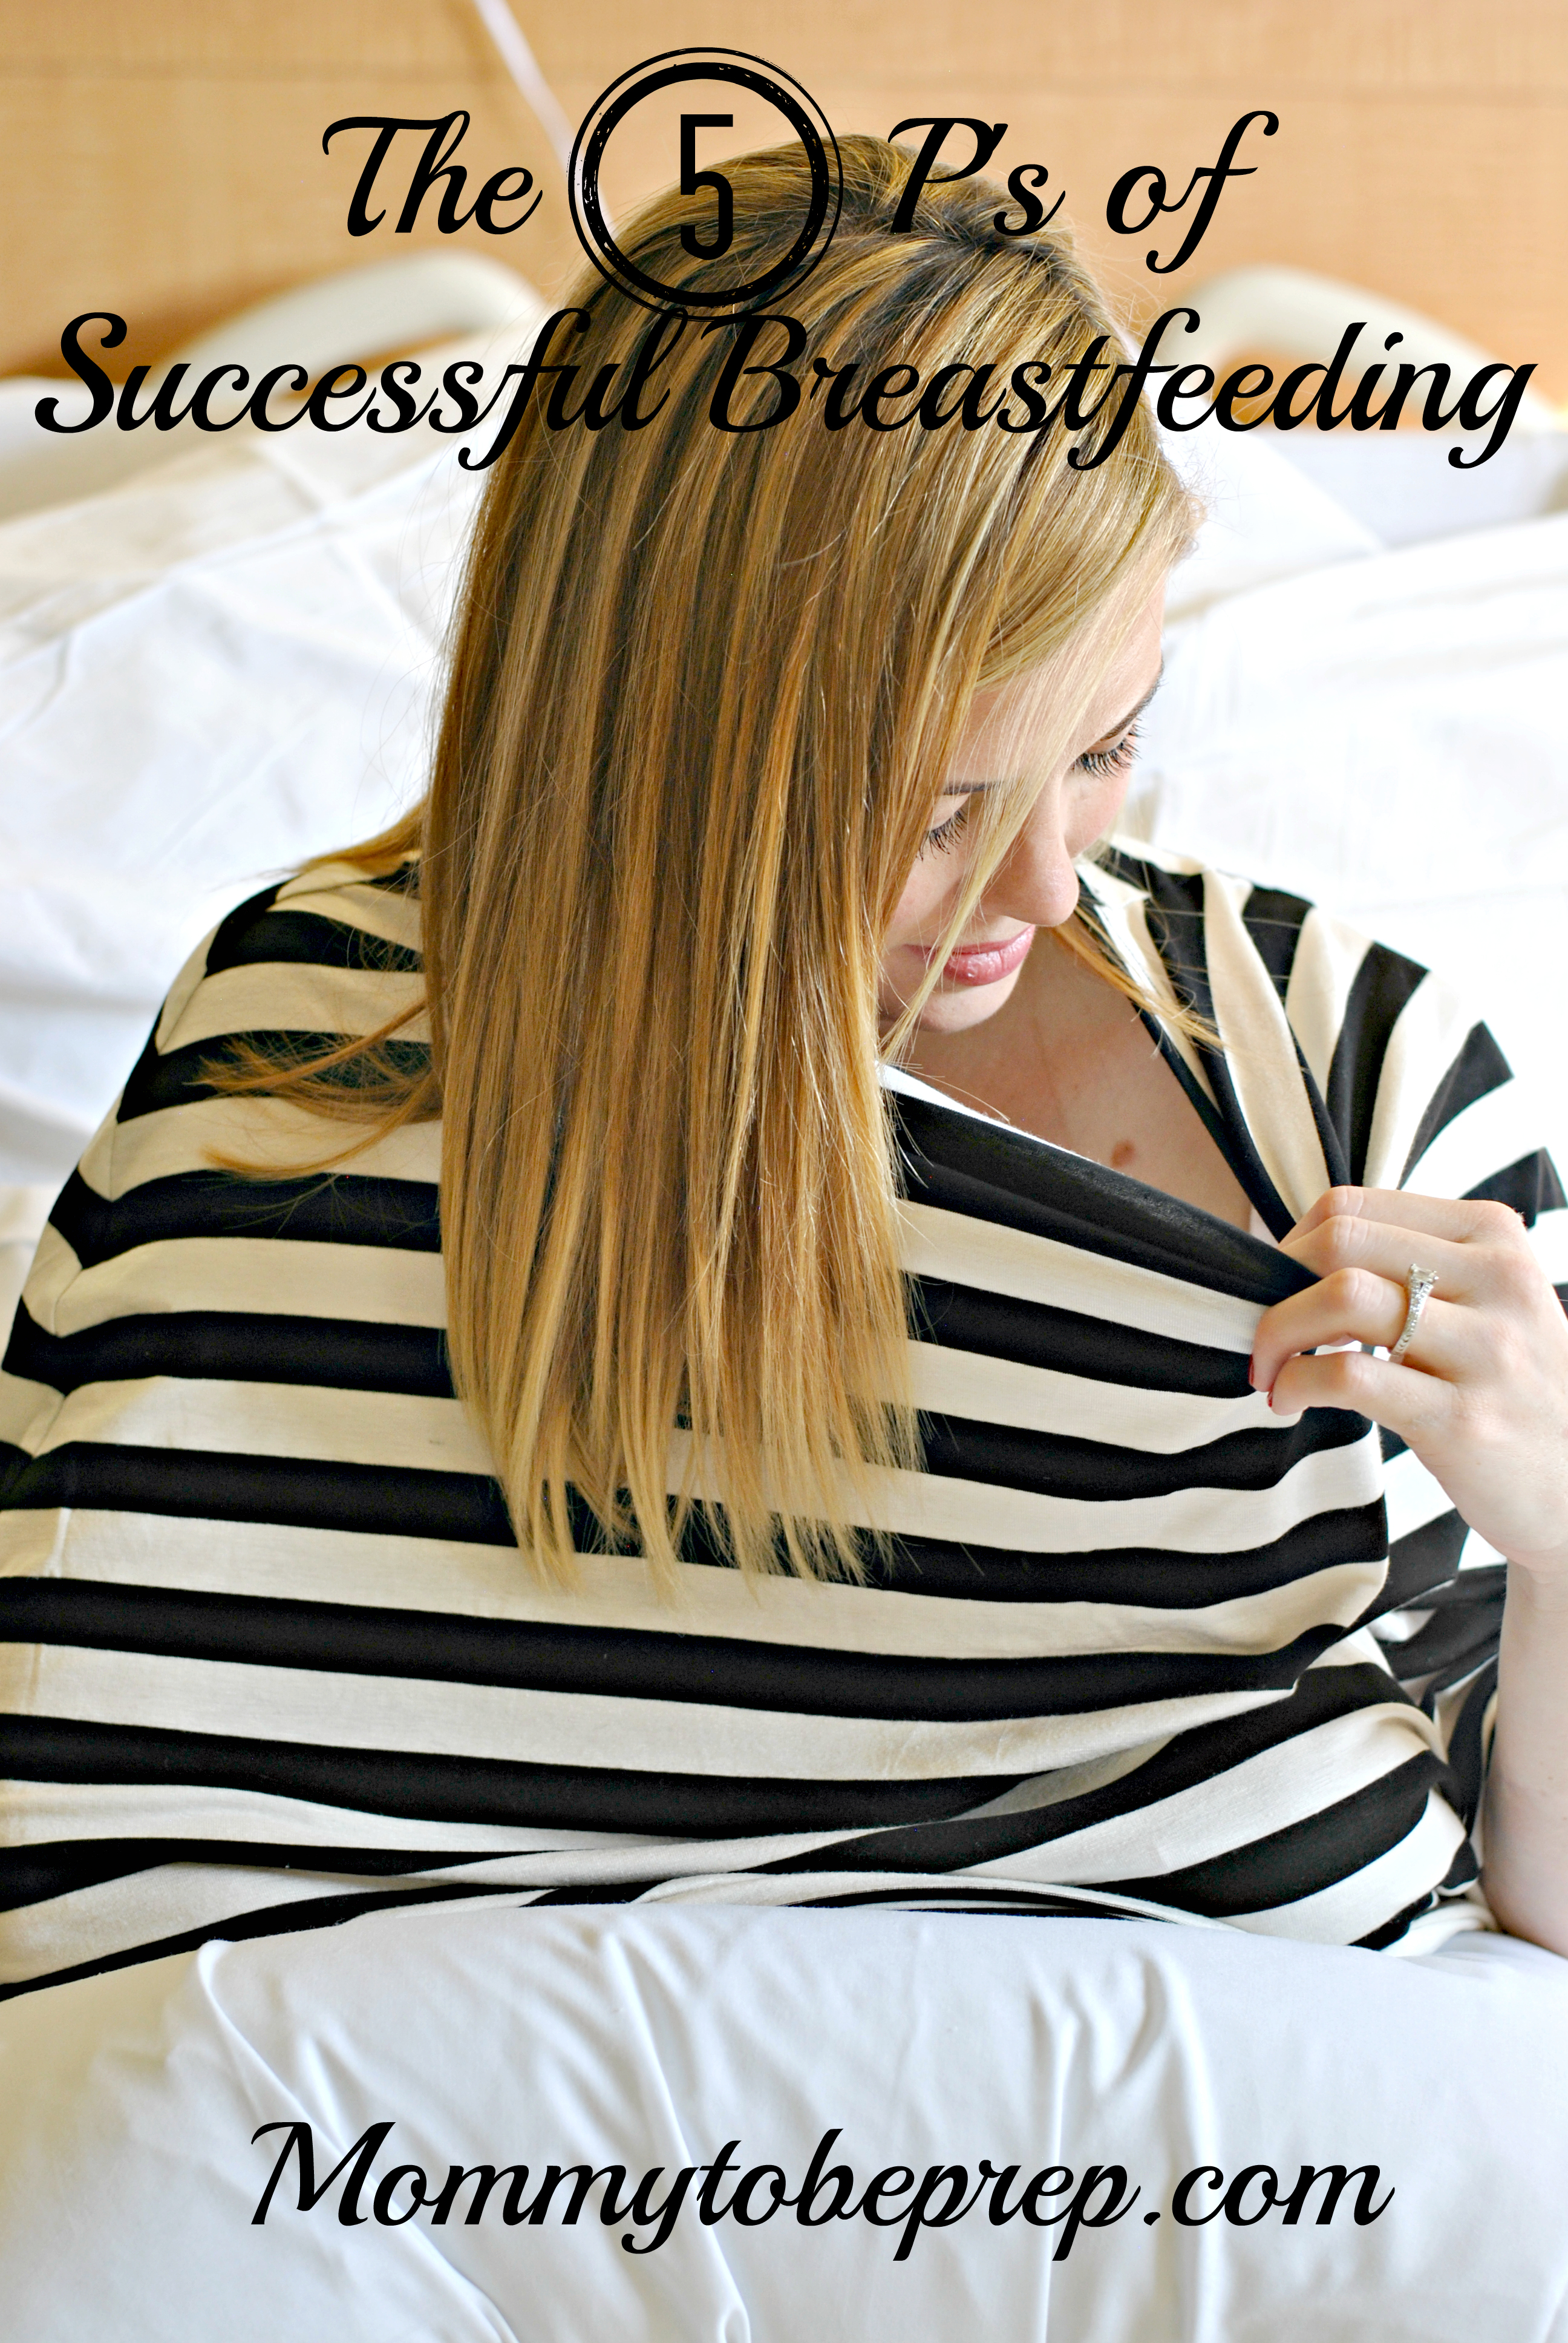 The 5 Ps of Successful Breastfeeding